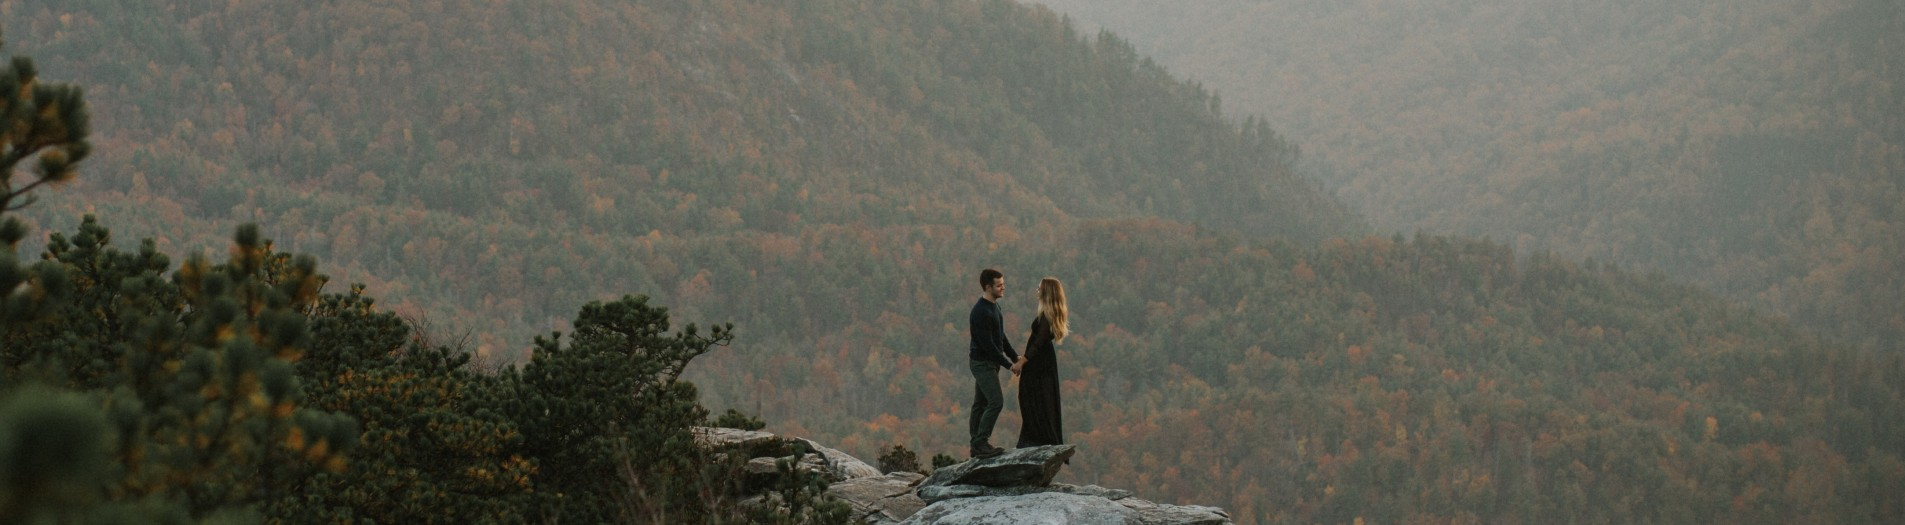 Nicole + Michael | Linville Gorge Mountaintop Engagement Session, Boone, NC